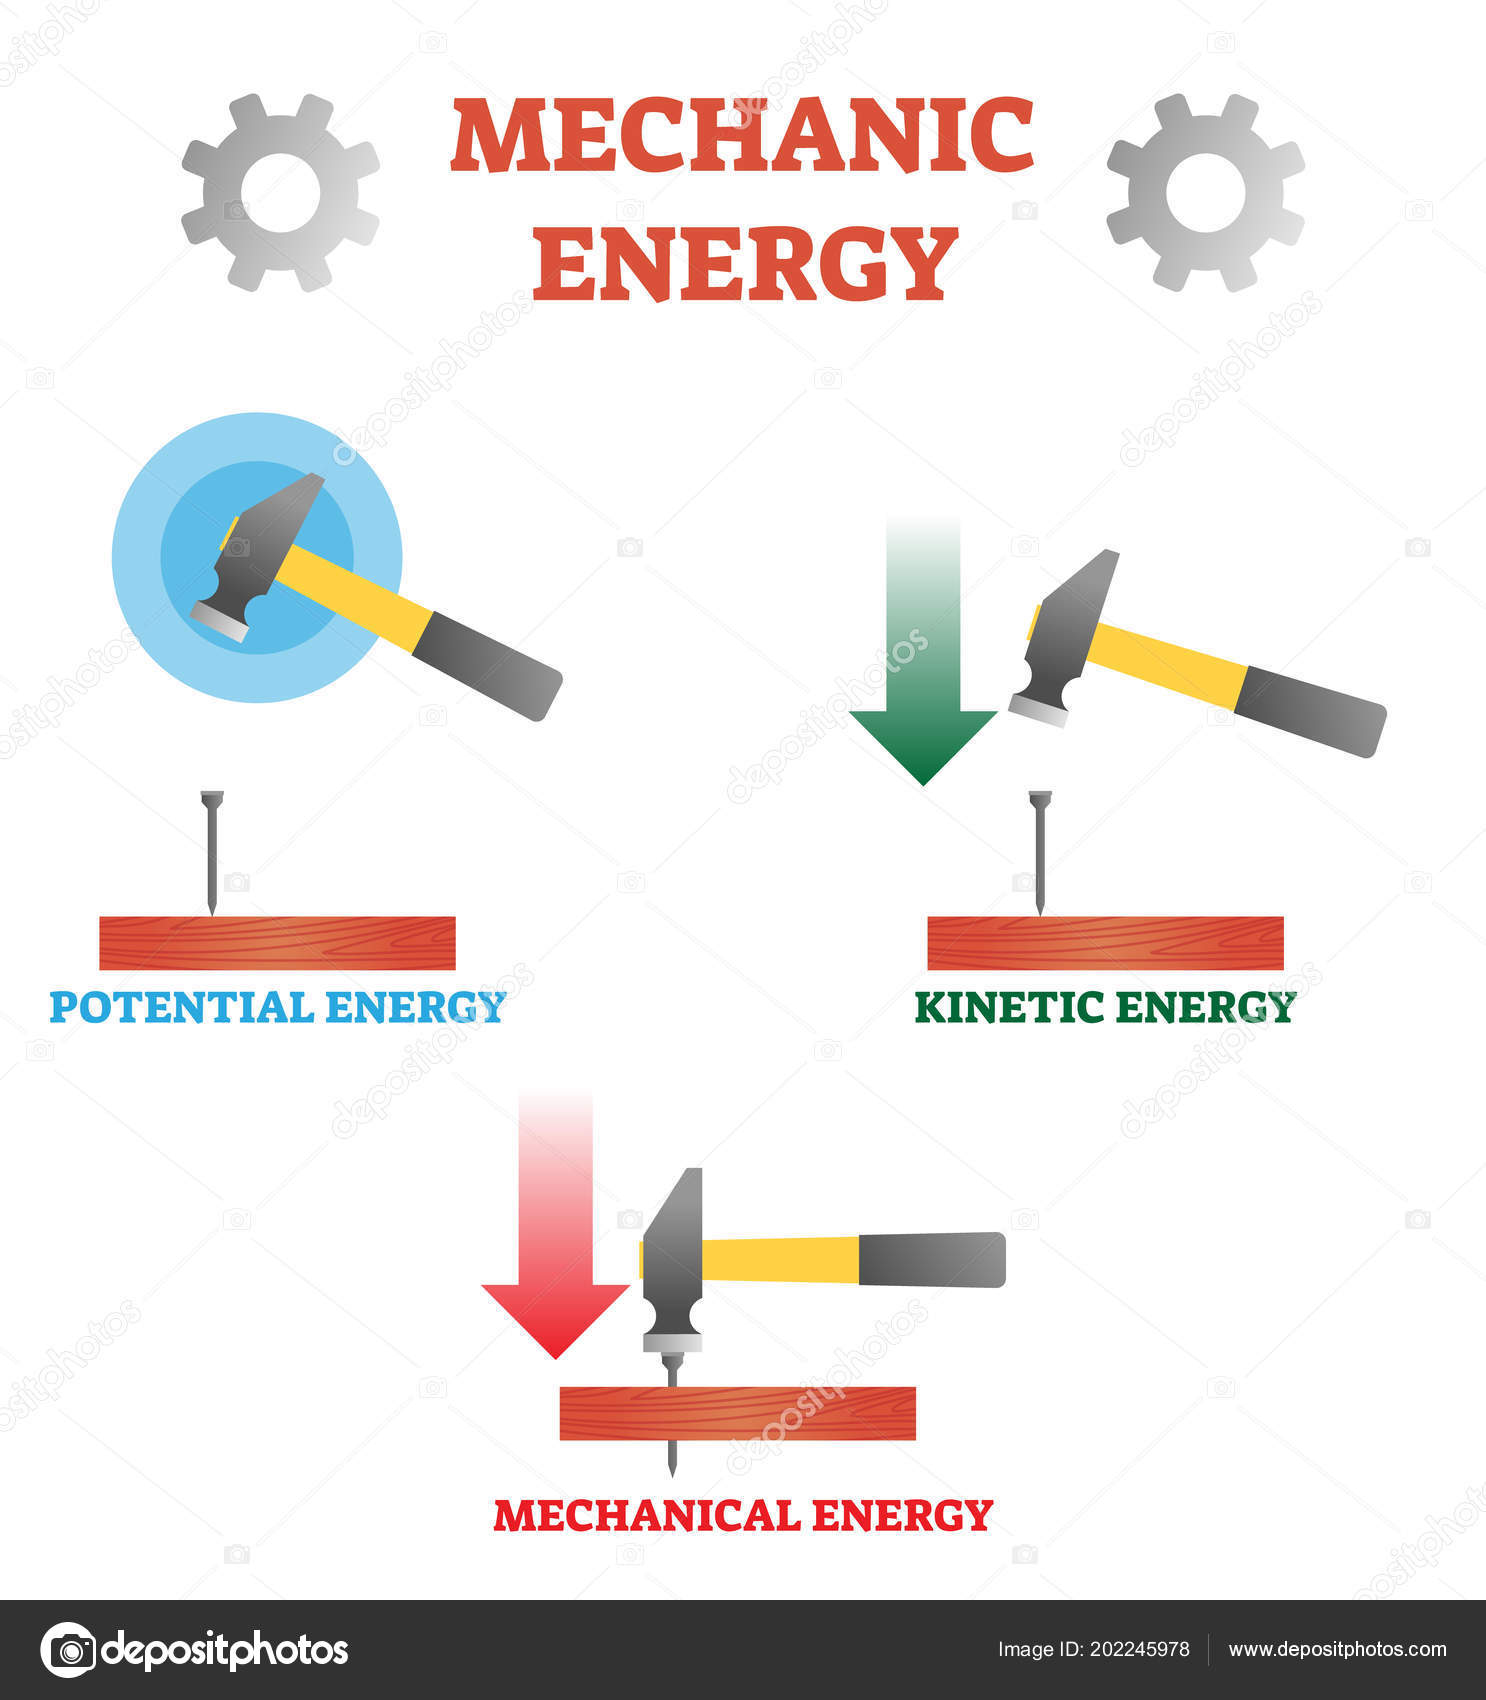 hight resolution of scheme with potential kinetic and mechanical energy example with hummer nail and plank physics basics by newton diagram with force motion and impact